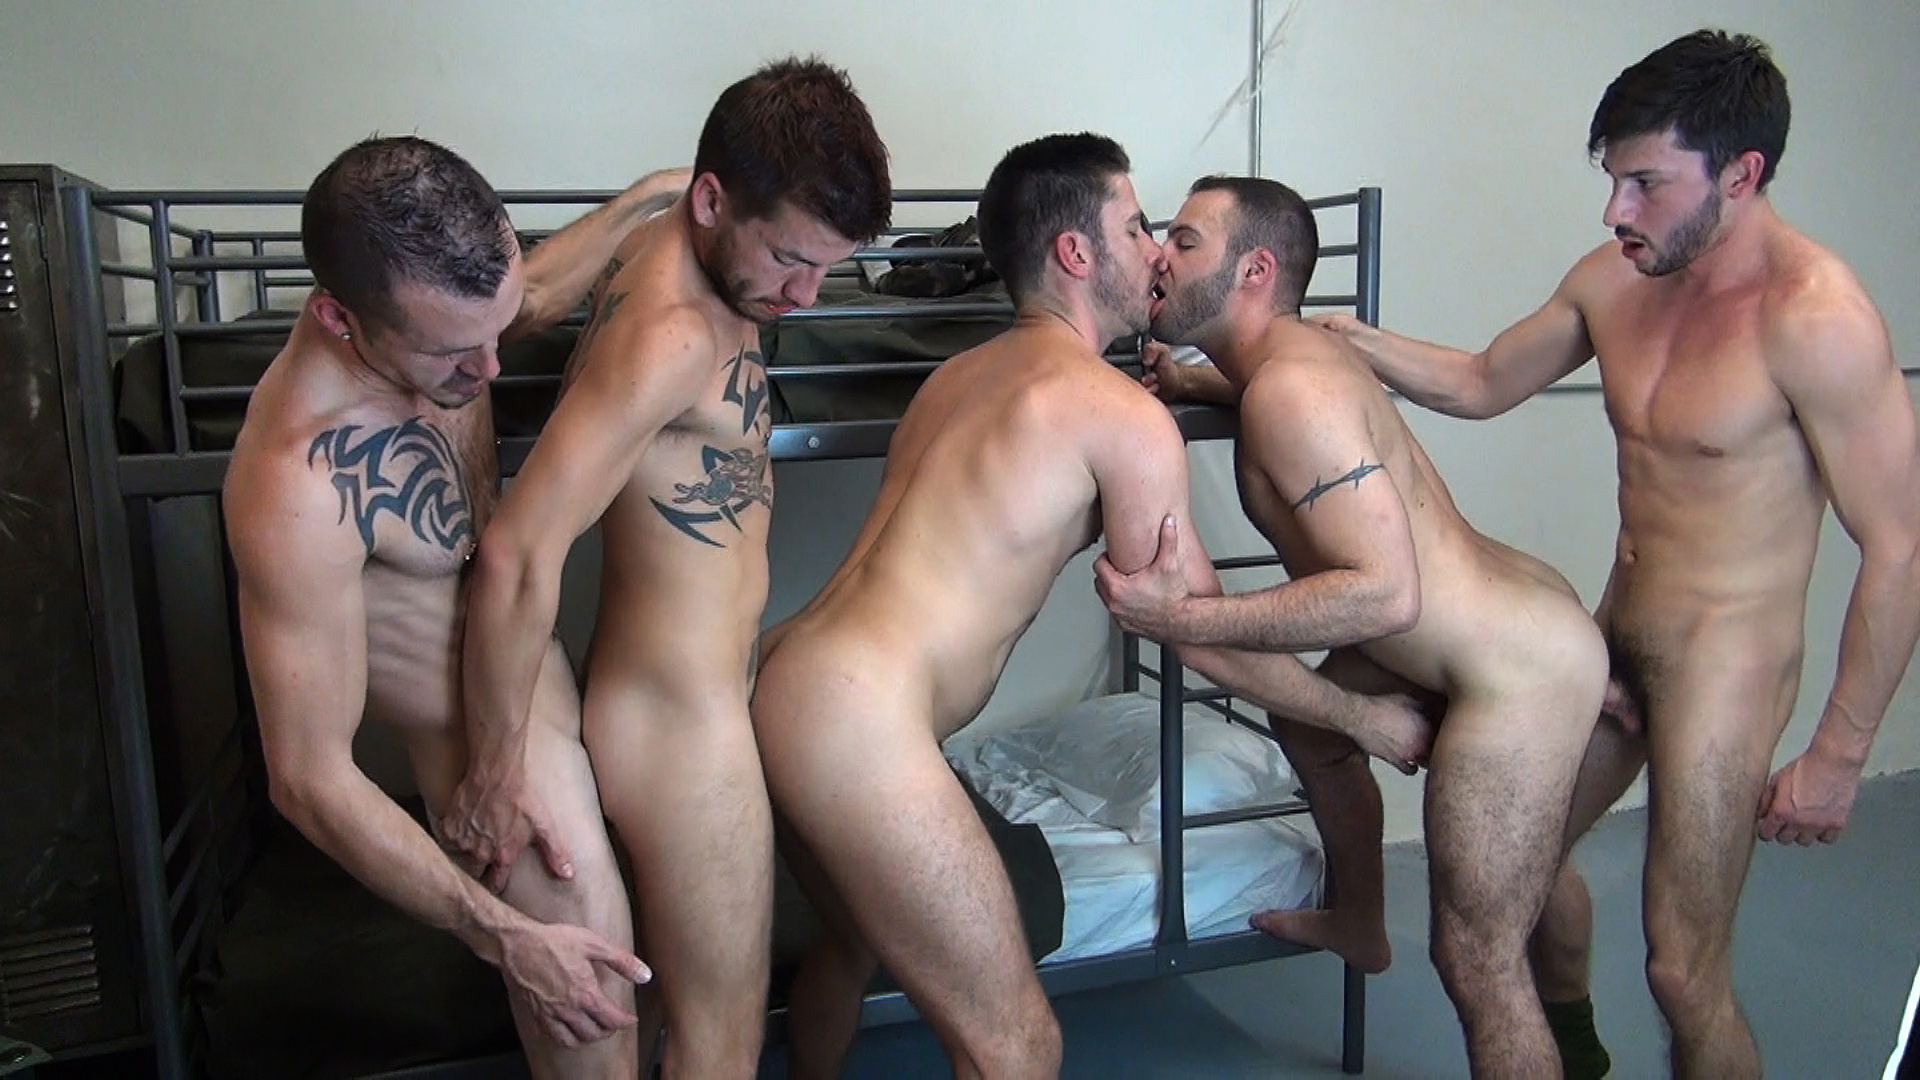 horny-gays-hot-cock-fucking-and-barebacking-naked-pictures-mature-women